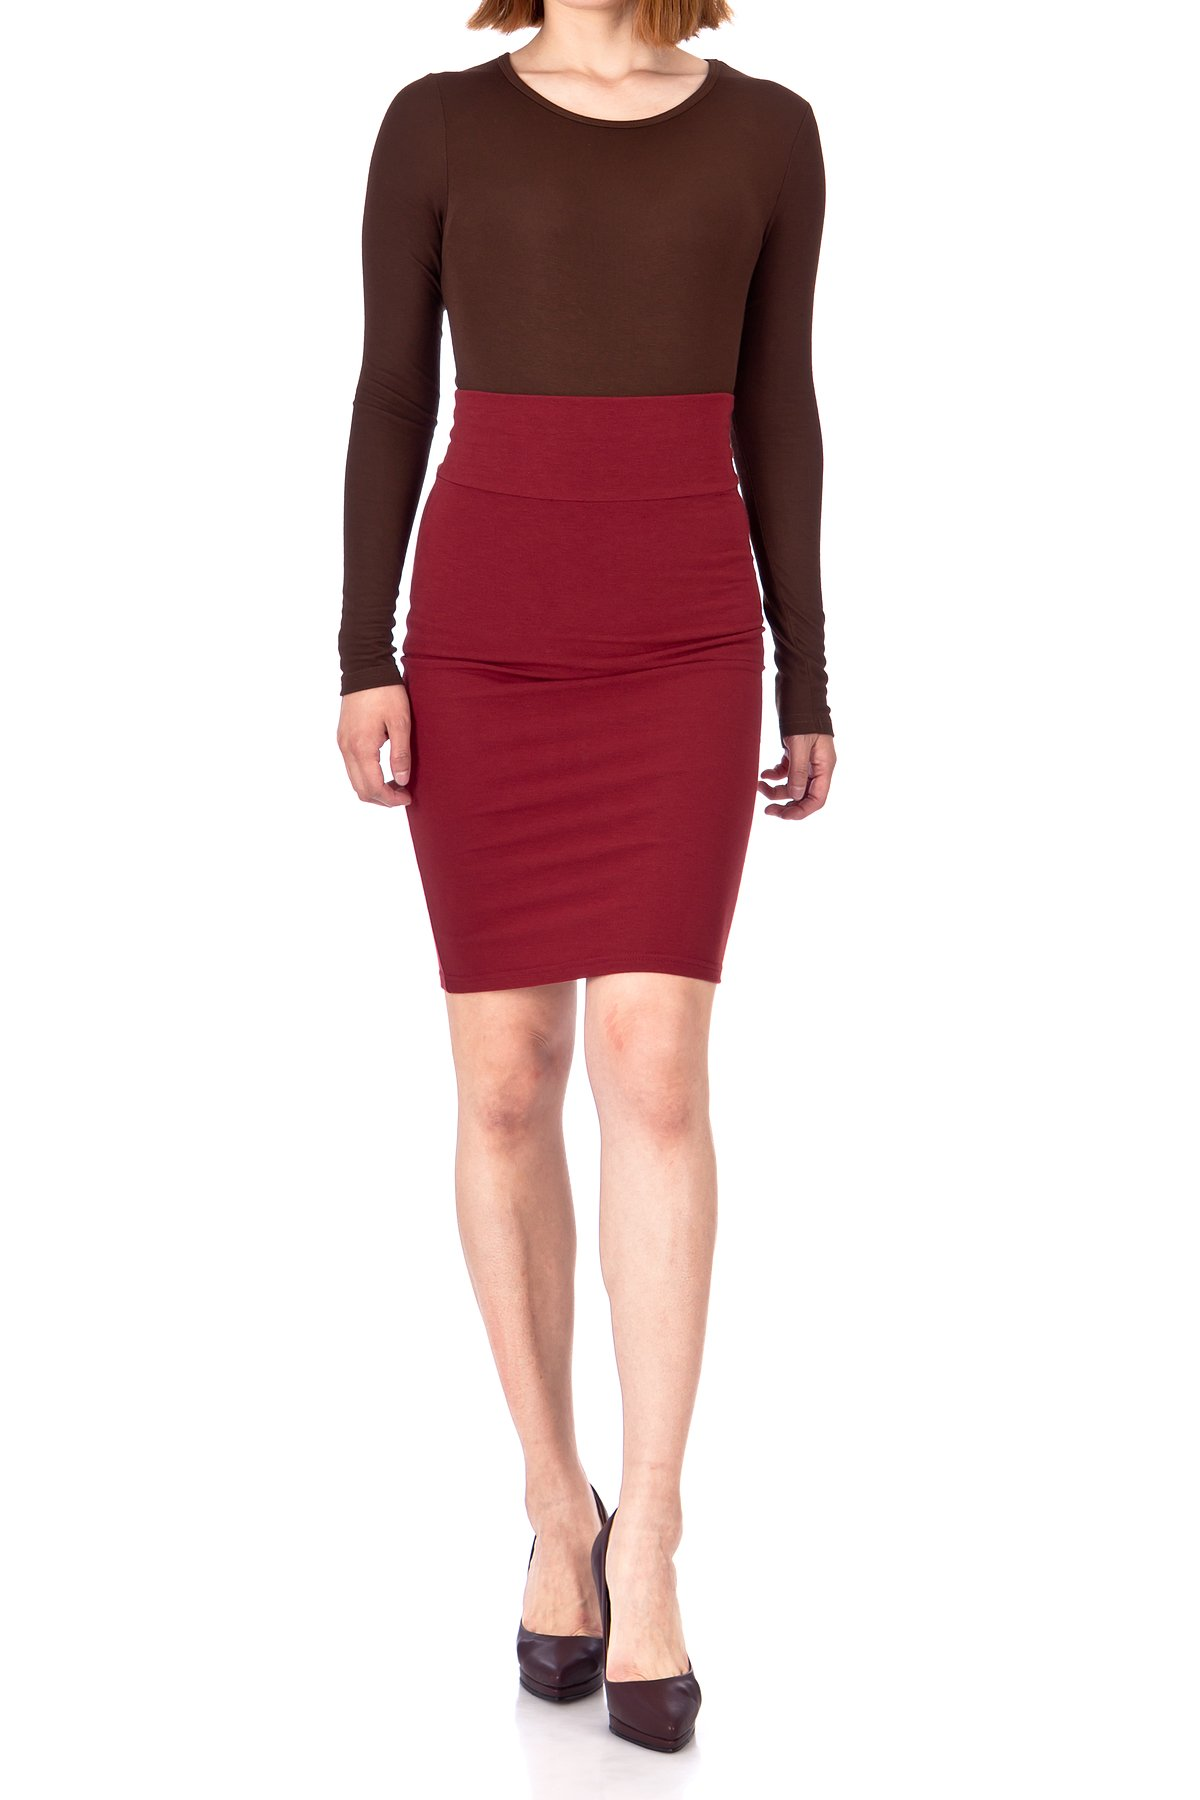 Every Occasion Stretch Pull on Wide High Waist Bodycon Pencil Knee Length Midi Skirt Burgundy 05 1